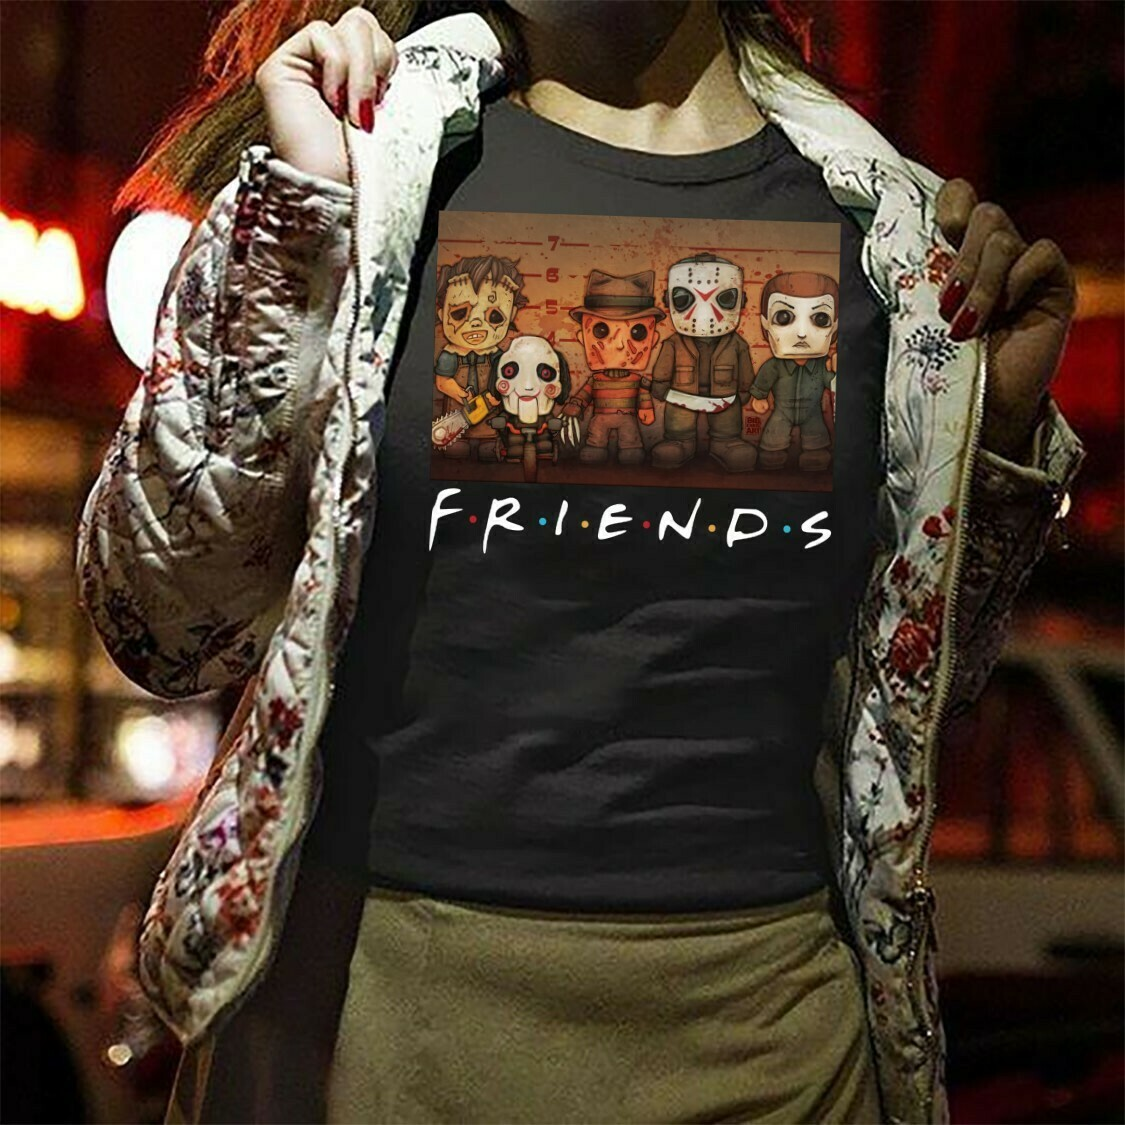 Friends Horror Character Squad Gift for Fan Lover Horror Movie Friday The 13th Villains Halloween Horror movie mashup squad T-Shirt Long Sleeve Sweatshirt Hoodie Jolly Family Gifts